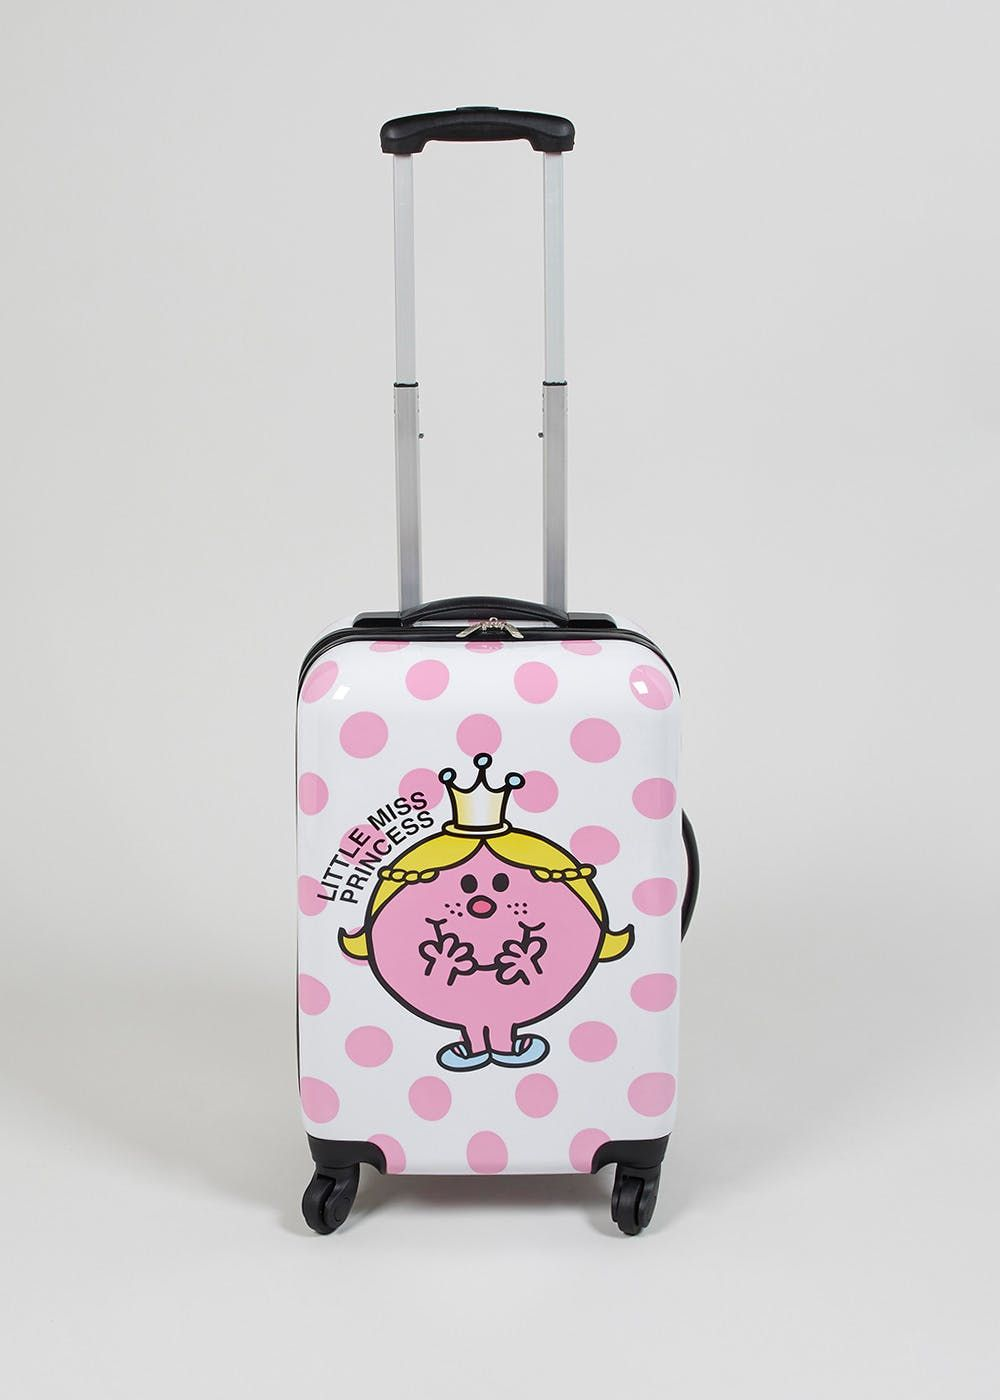 cdf51357bc4 White cabin case with all over pink spotted print and Little Miss Princess  print. Unfortunately